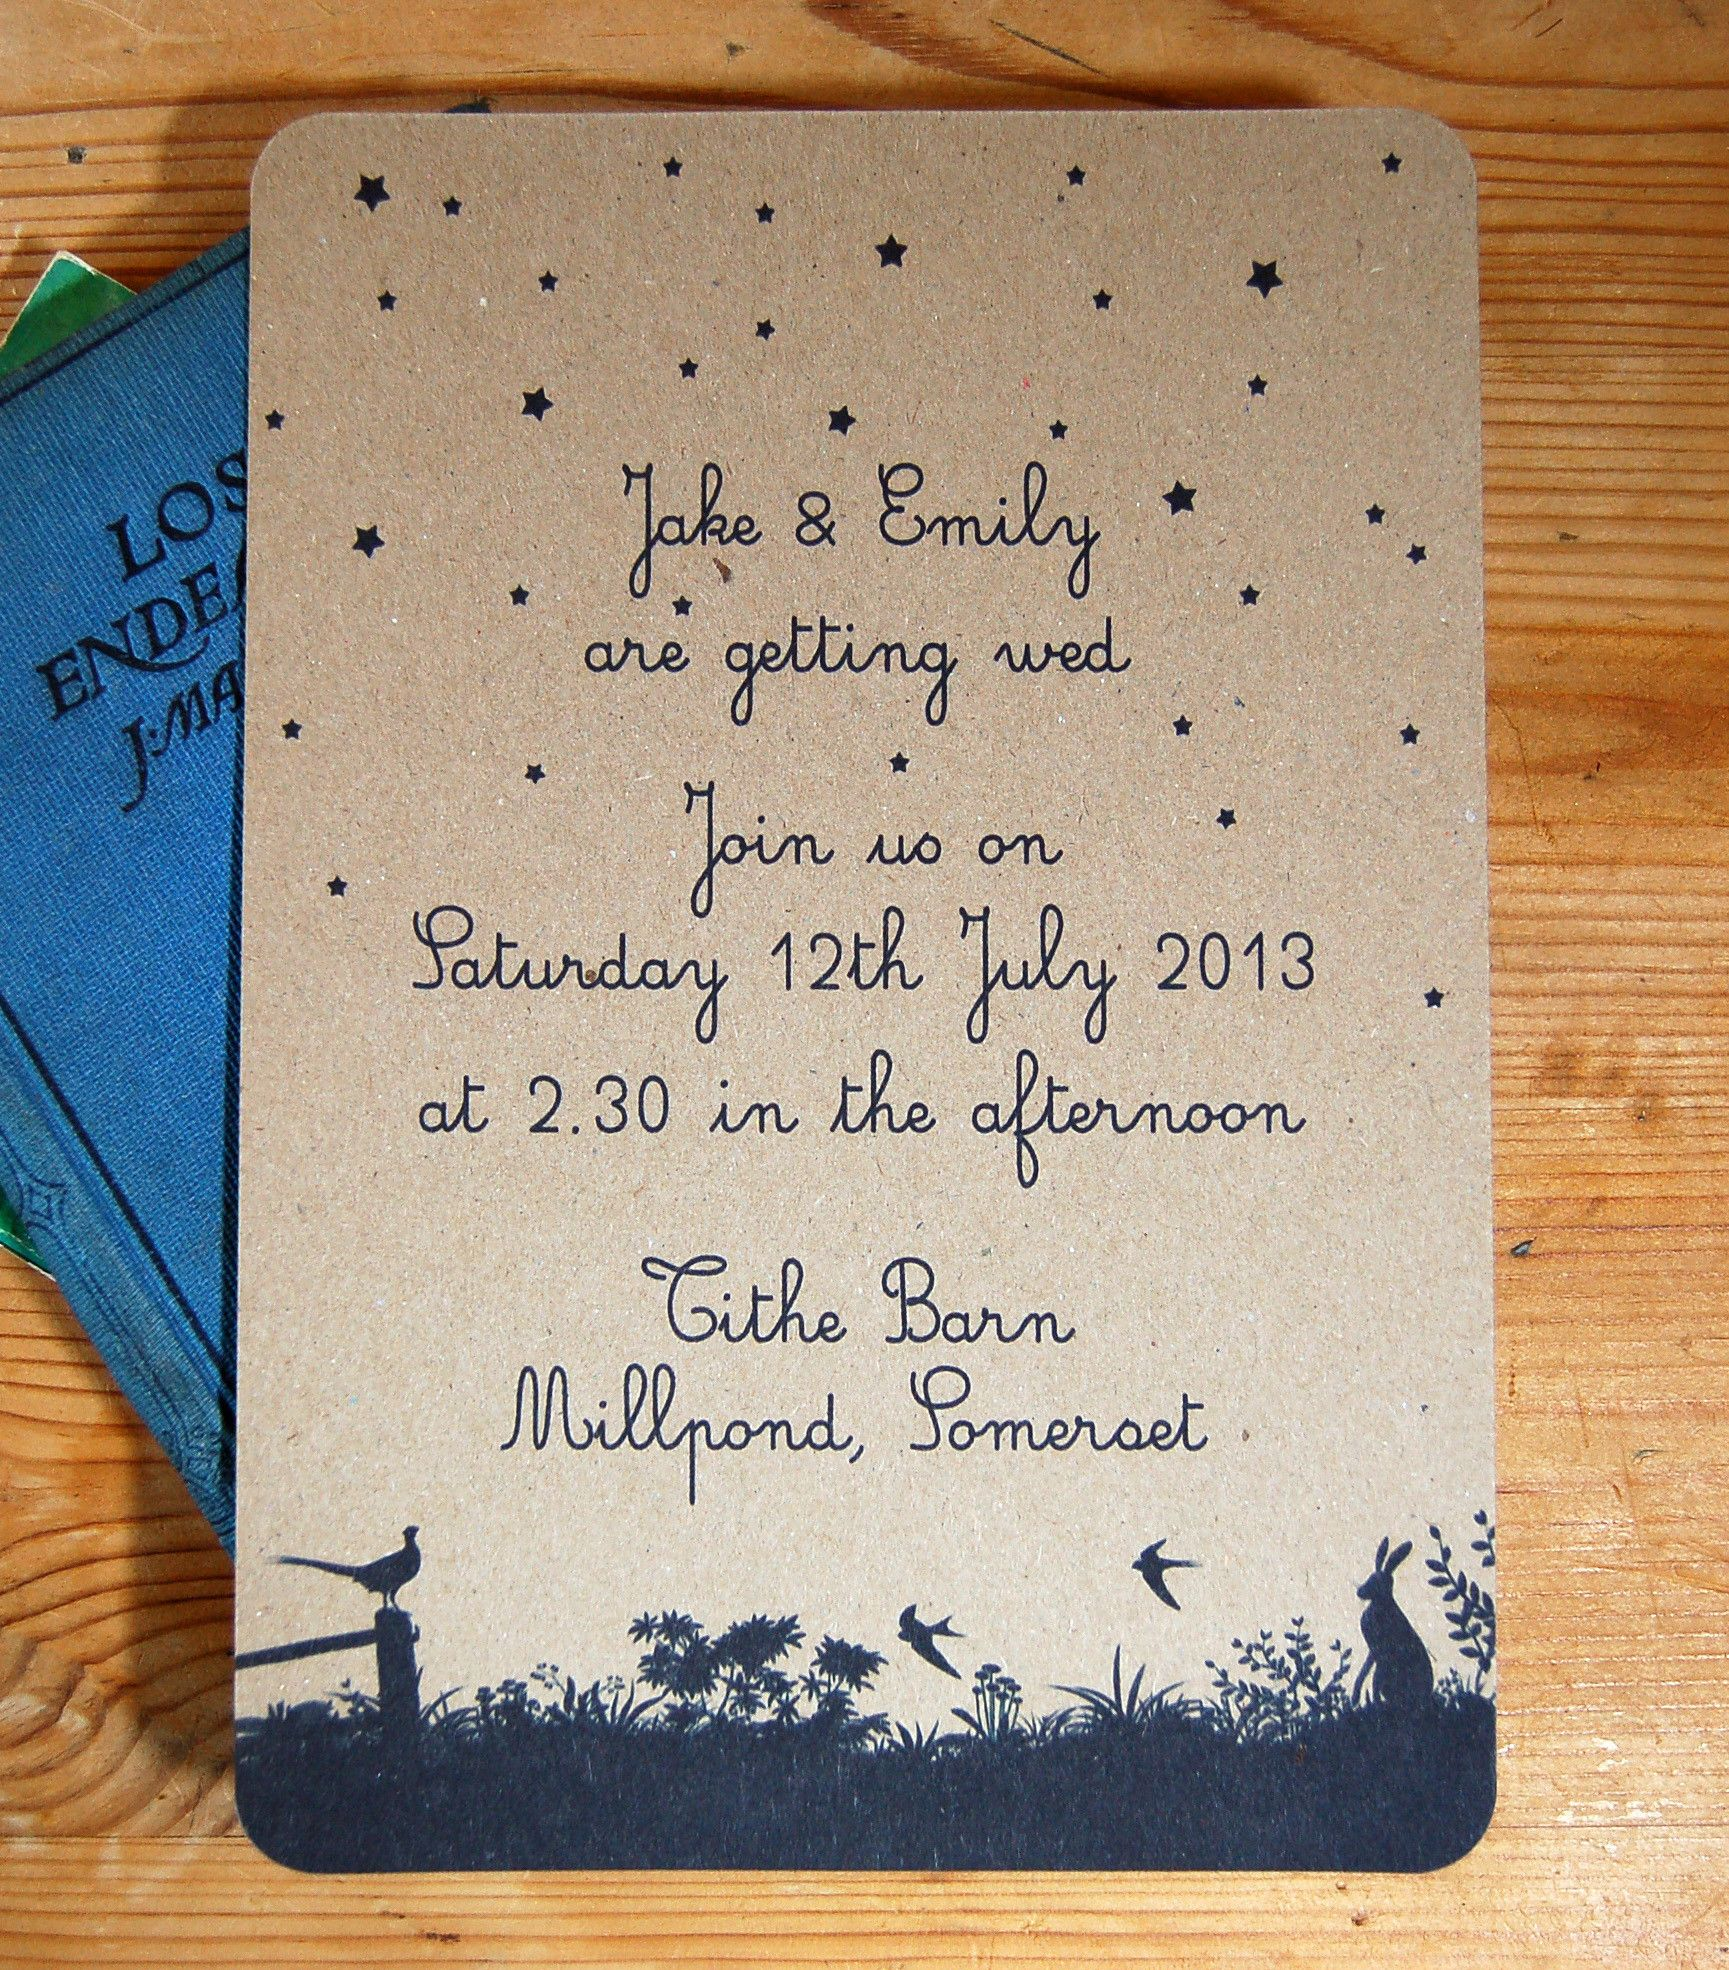 Midsummer Wedding Invitation | Weddings at Purity Spring Resort ...